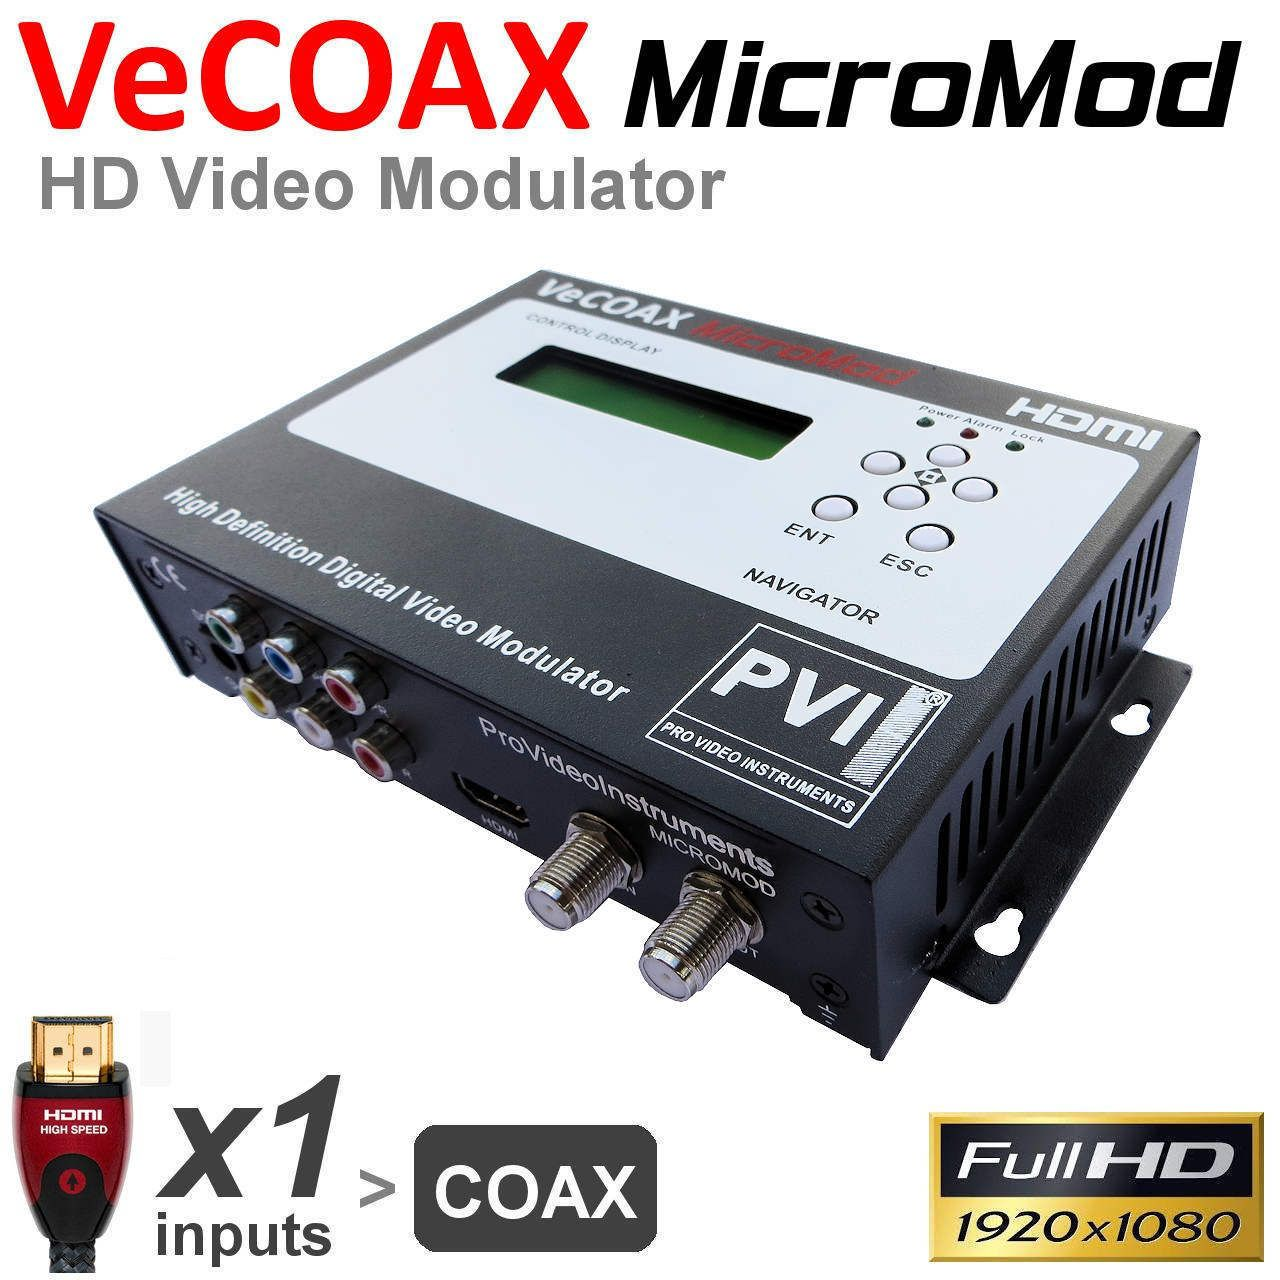 3bab247405d3ff511ae31de4b3196e86 wired@home com pvi vecoax micromod hdmi to qam rf hd modulator  at bayanpartner.co